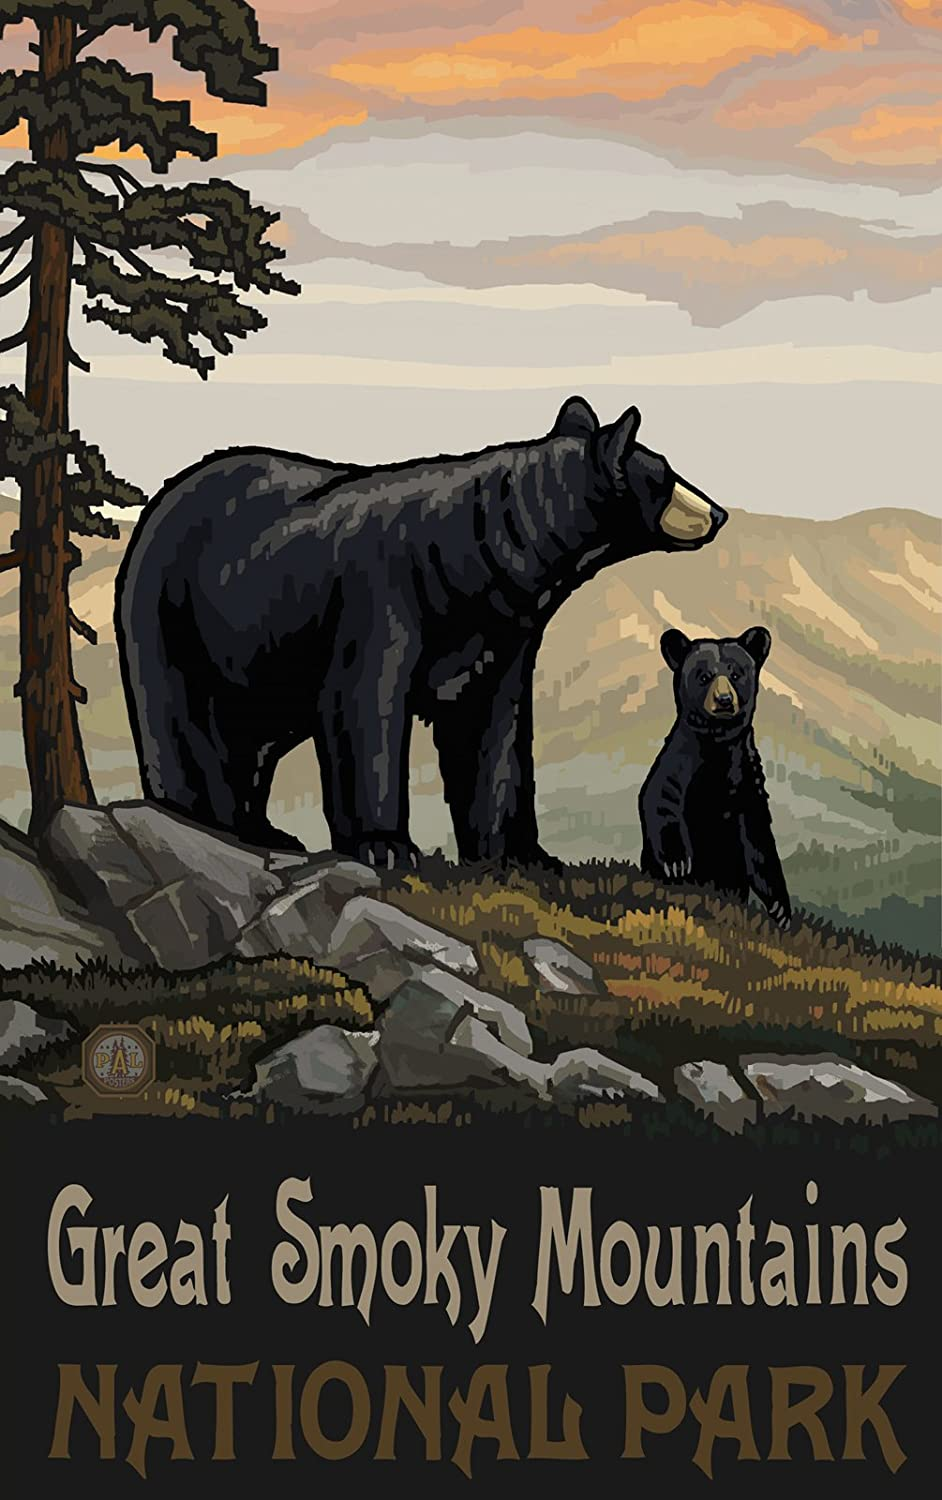 Amazon northwest art mall great smoky mountains national park amazon northwest art mall great smoky mountains national park north carolina black bear family wall art by paul a lanquist 11 by 17 inch prints amipublicfo Choice Image